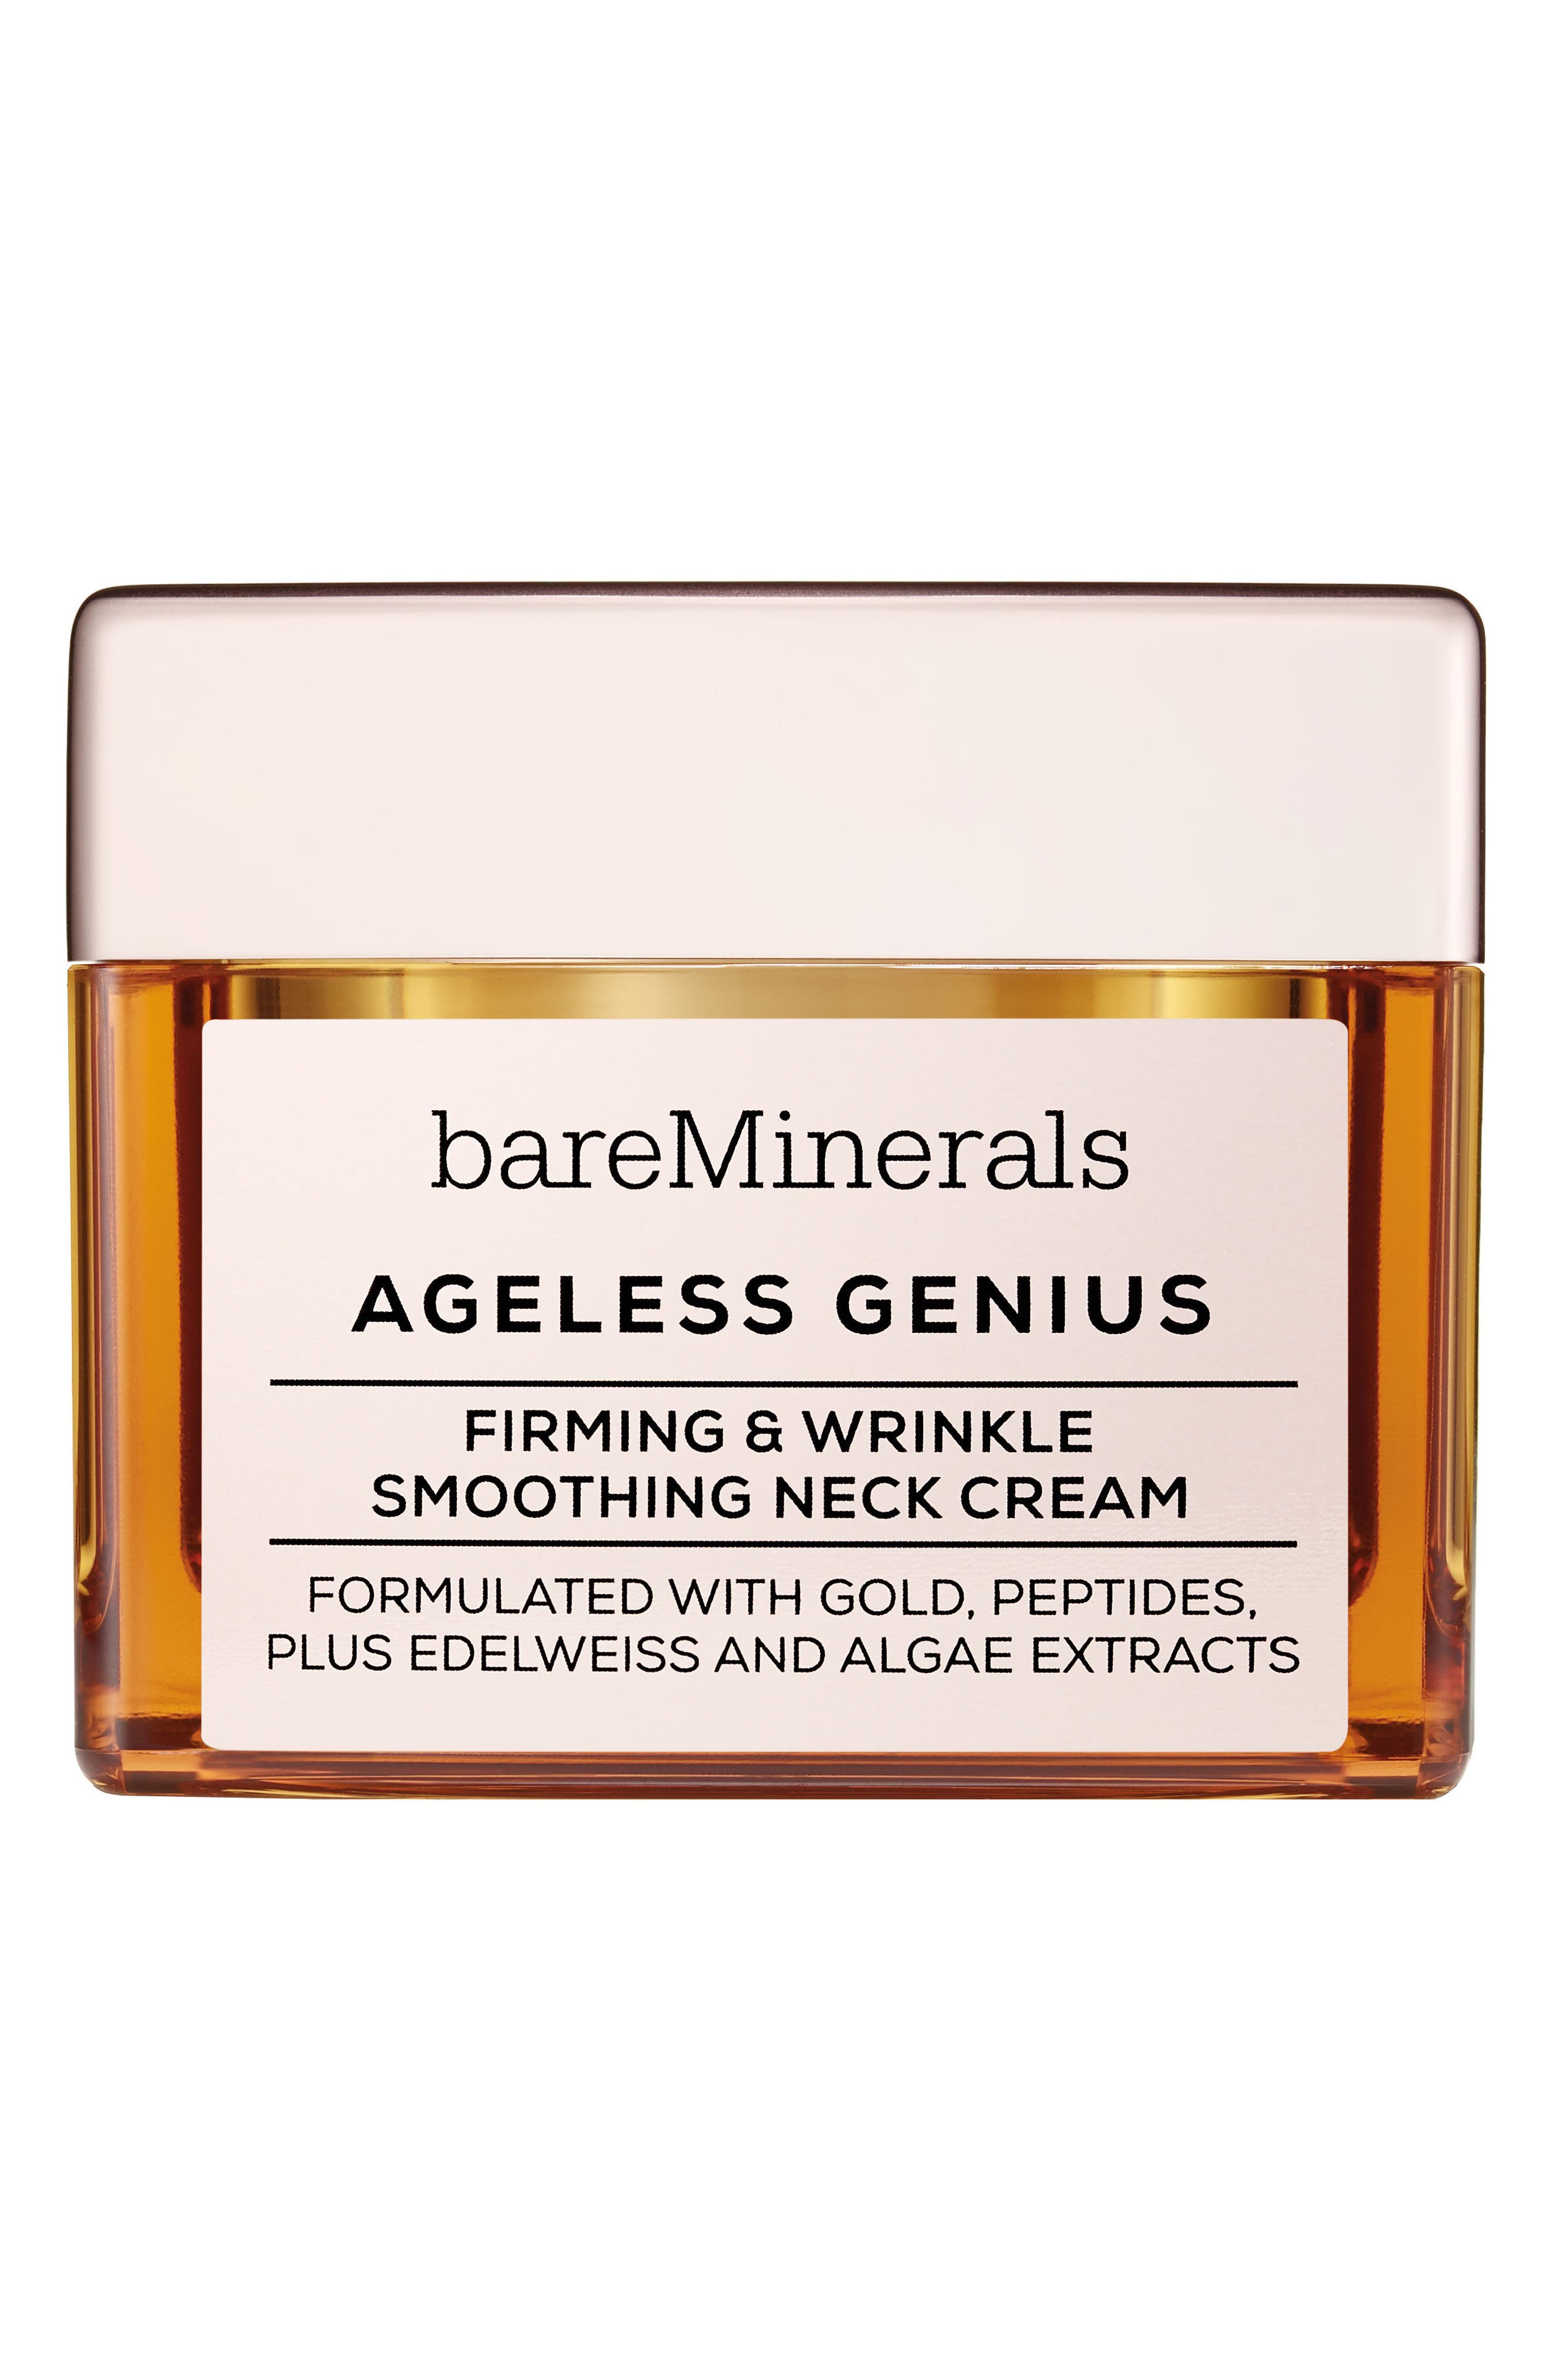 Ageless Genius Firming & Wrinkle Smoothing Neck Cream,                             Main thumbnail 1, color,                             NO COLOR